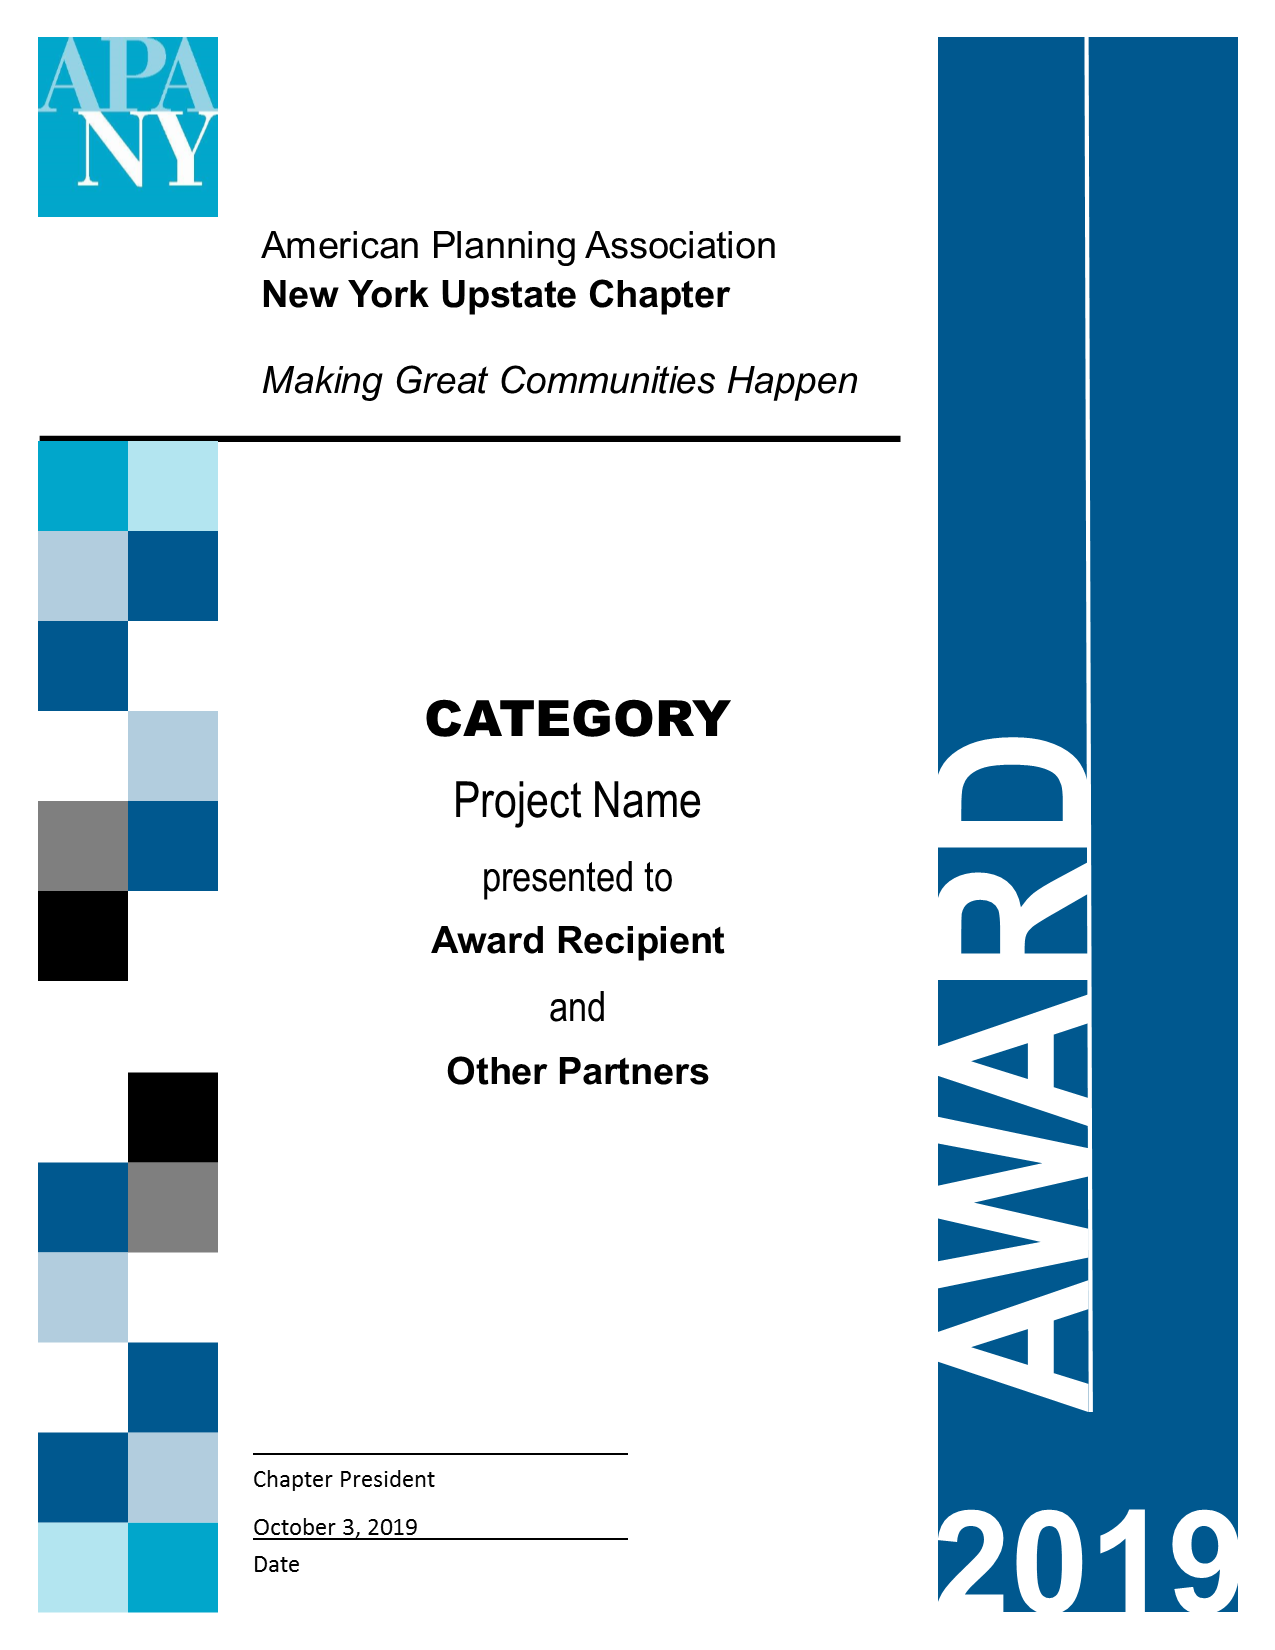 2019 NY Upstate APA Chapter Awards - The NY Upstate Chapter of the American Planning Association is accepting nominations for the 2019 Chapter Awards.